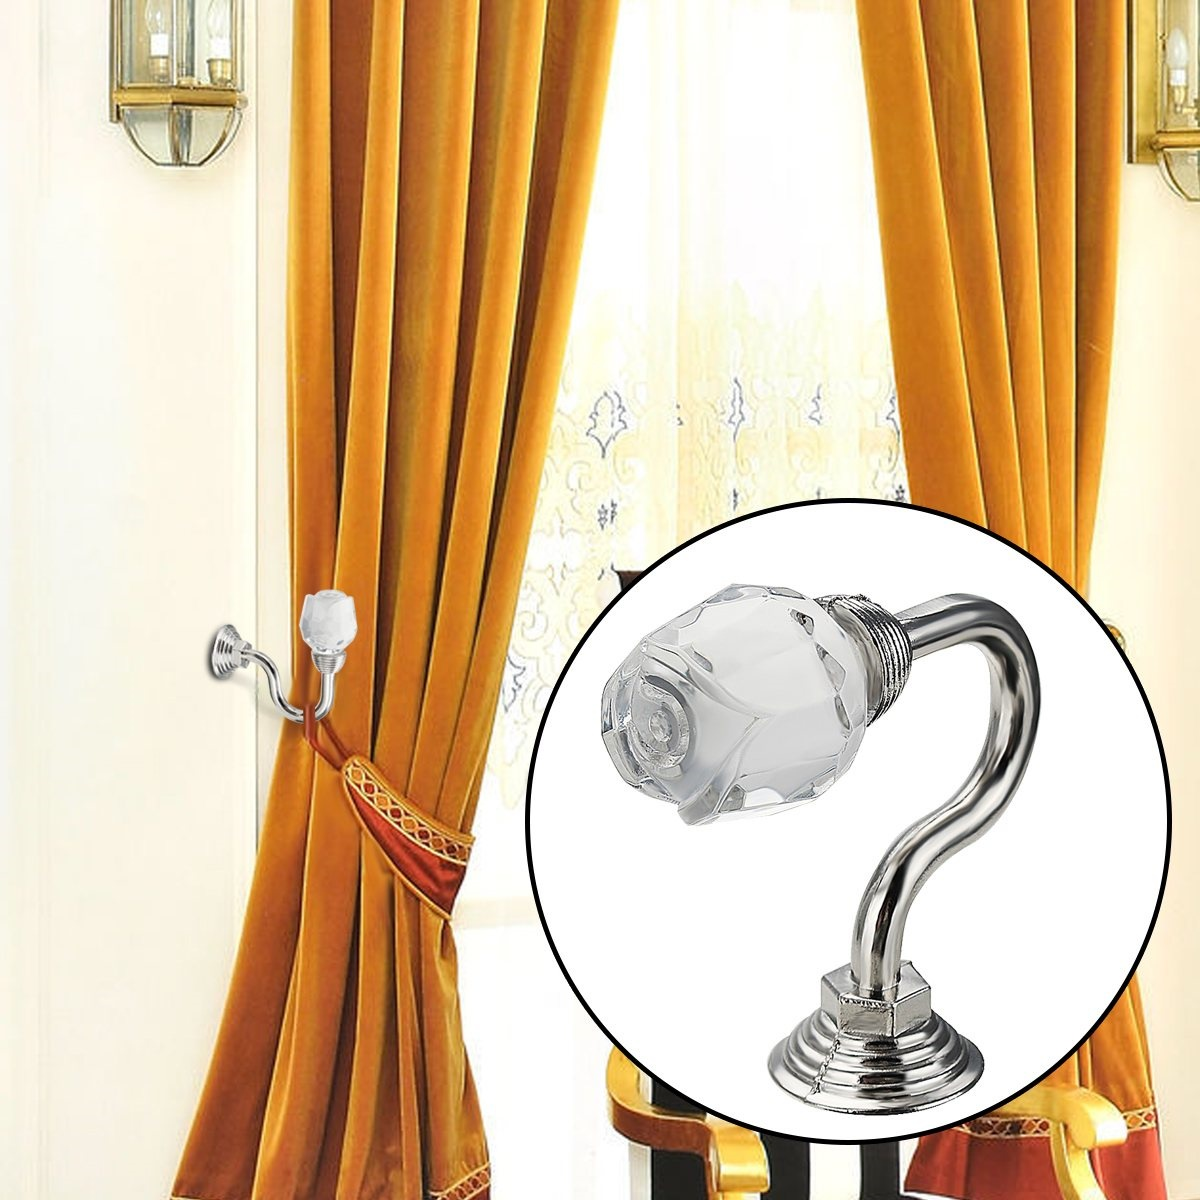 2pcs Round Silver Glass Crystal Curtain Tie Back Wall Hooks Wall Mounted Hanger Holder